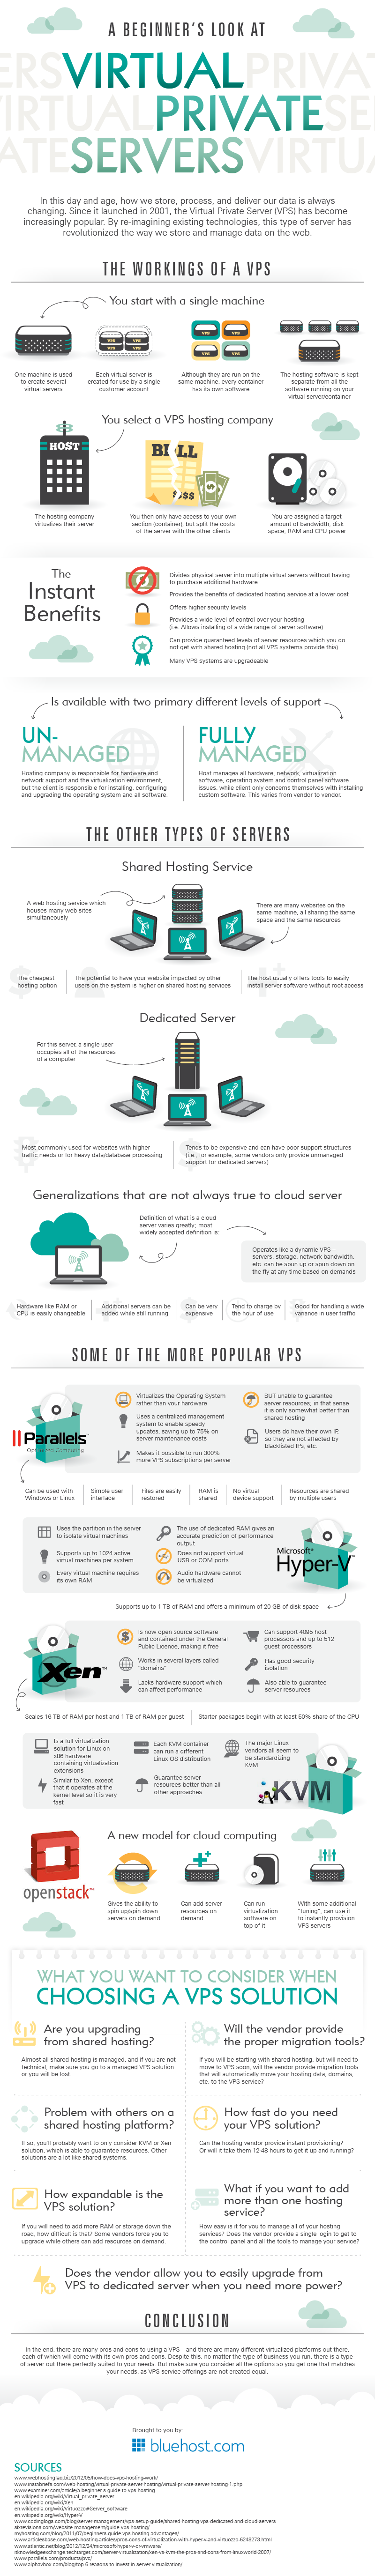 A Beginner's Look at Virtual Private Servers